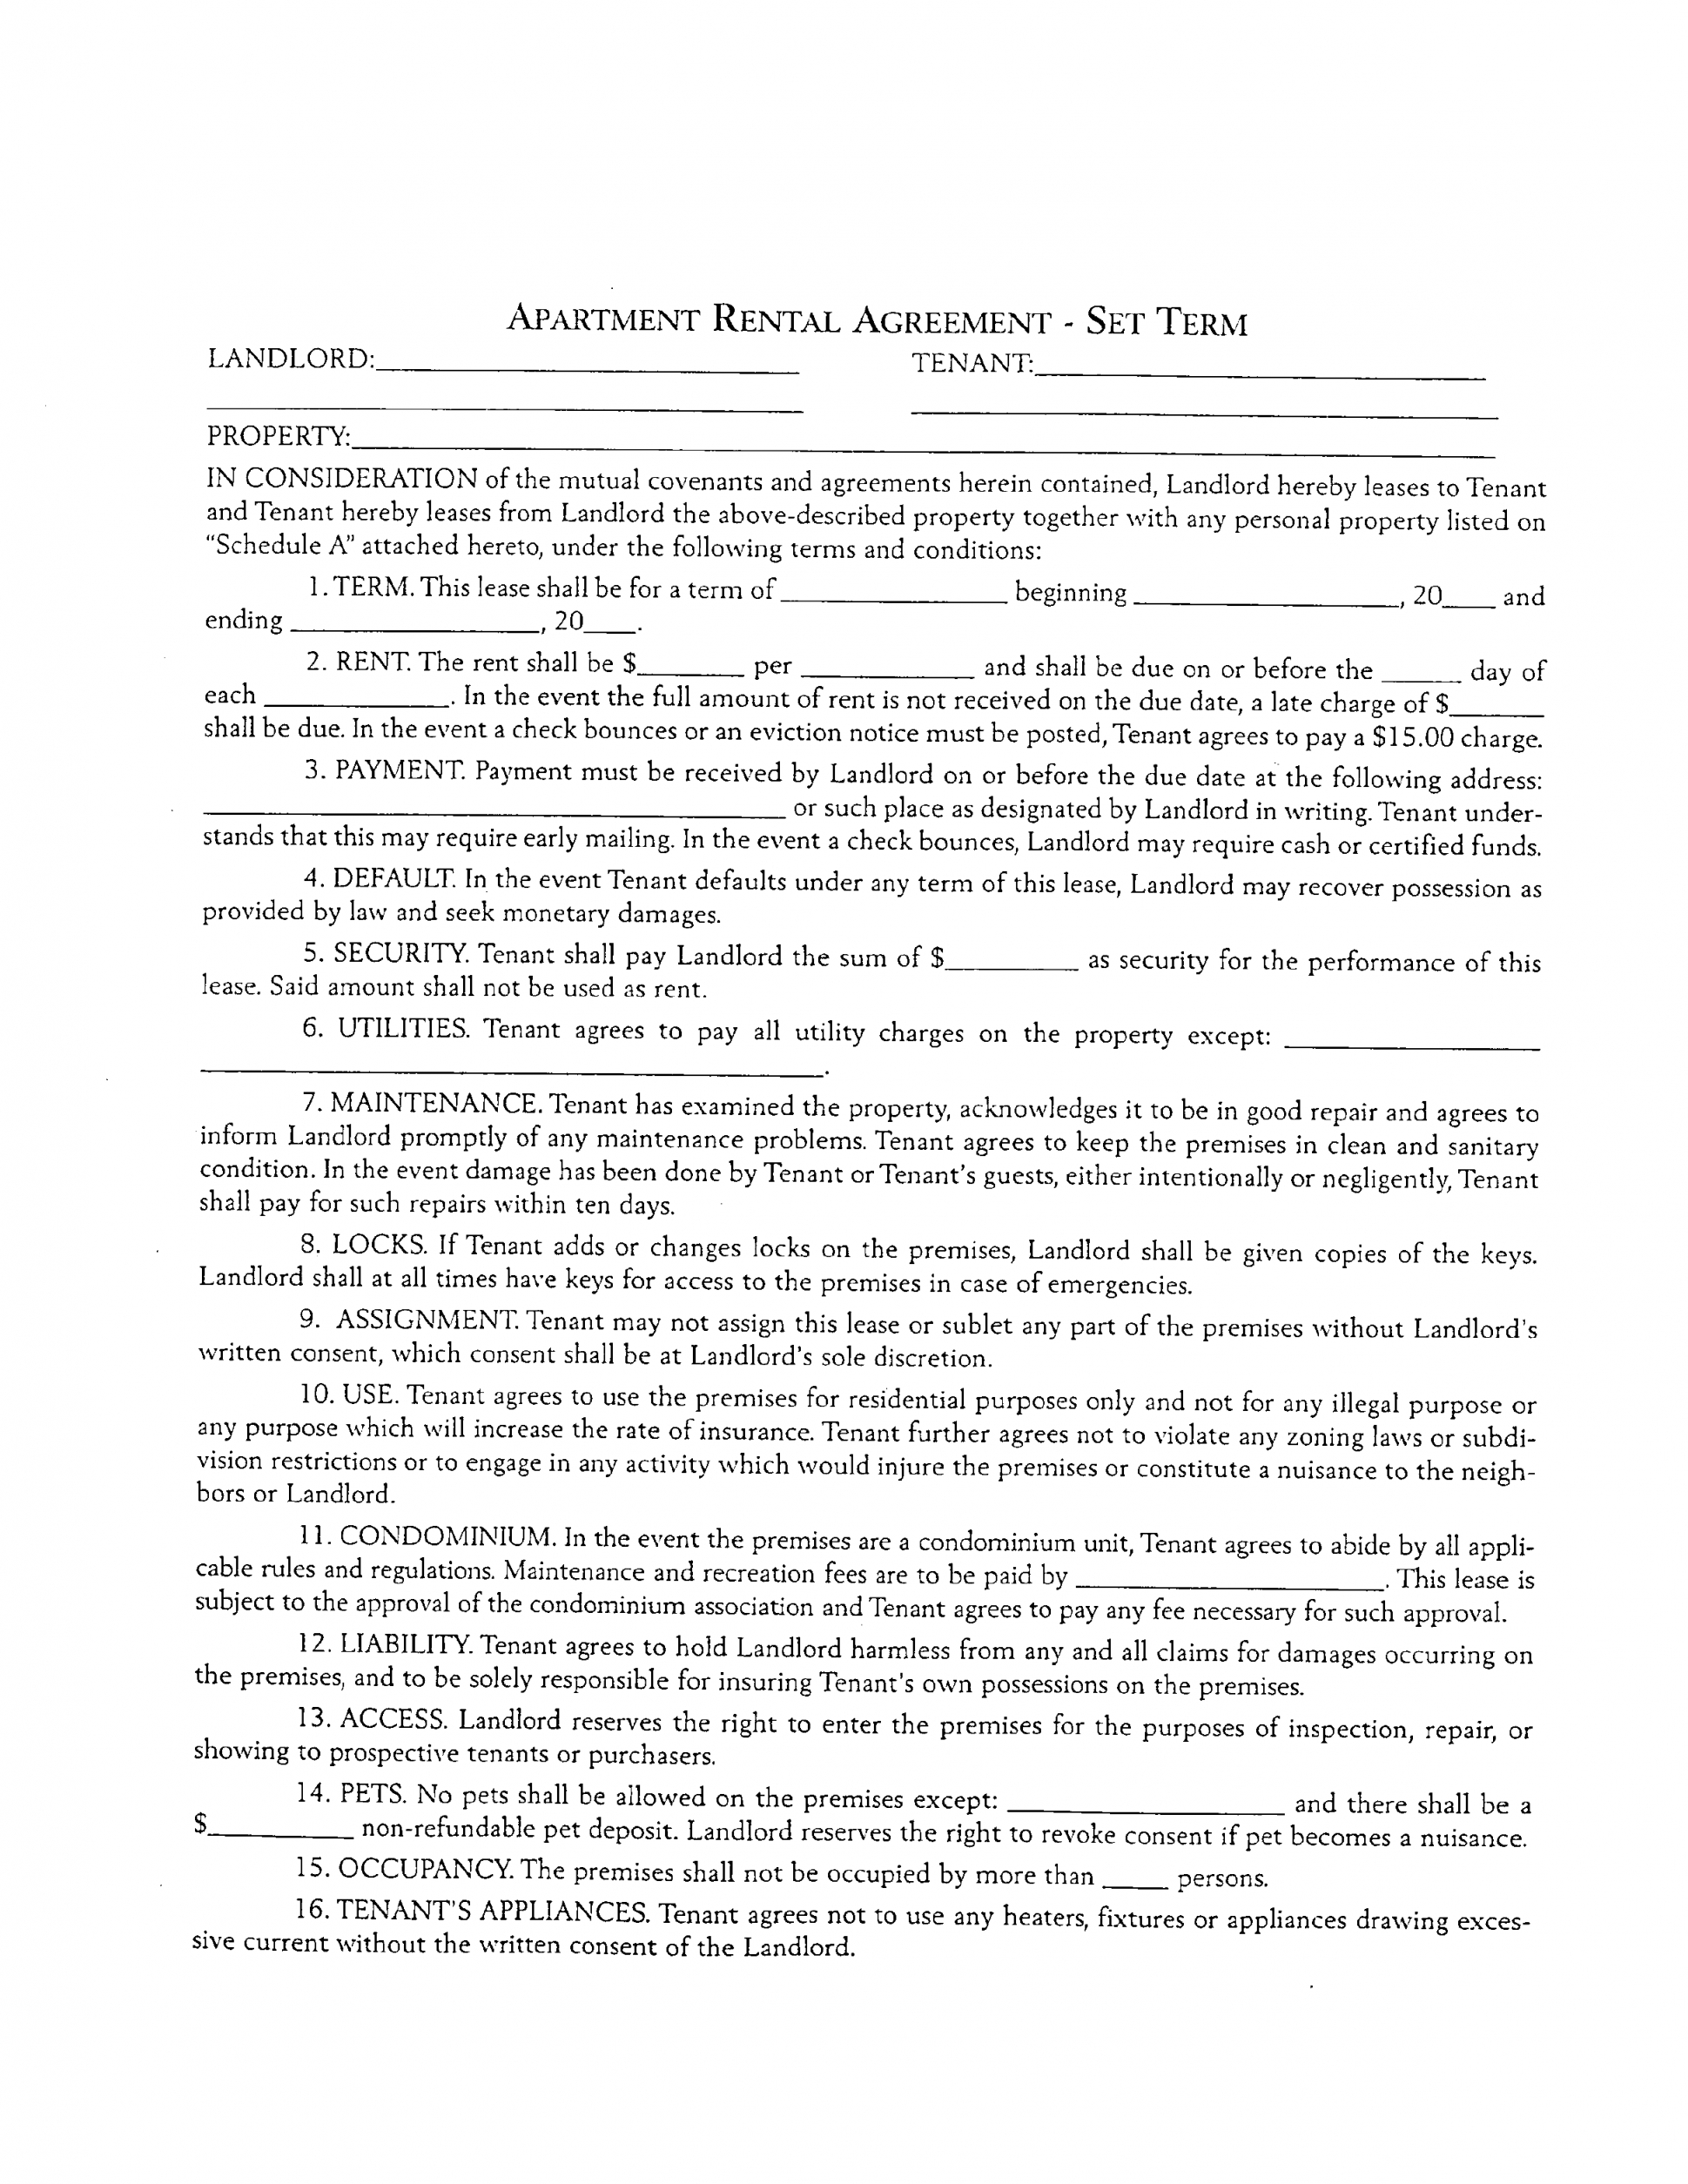 Form: Apartment Rental And Lease Form Inside Apartment Rental Agreement Template